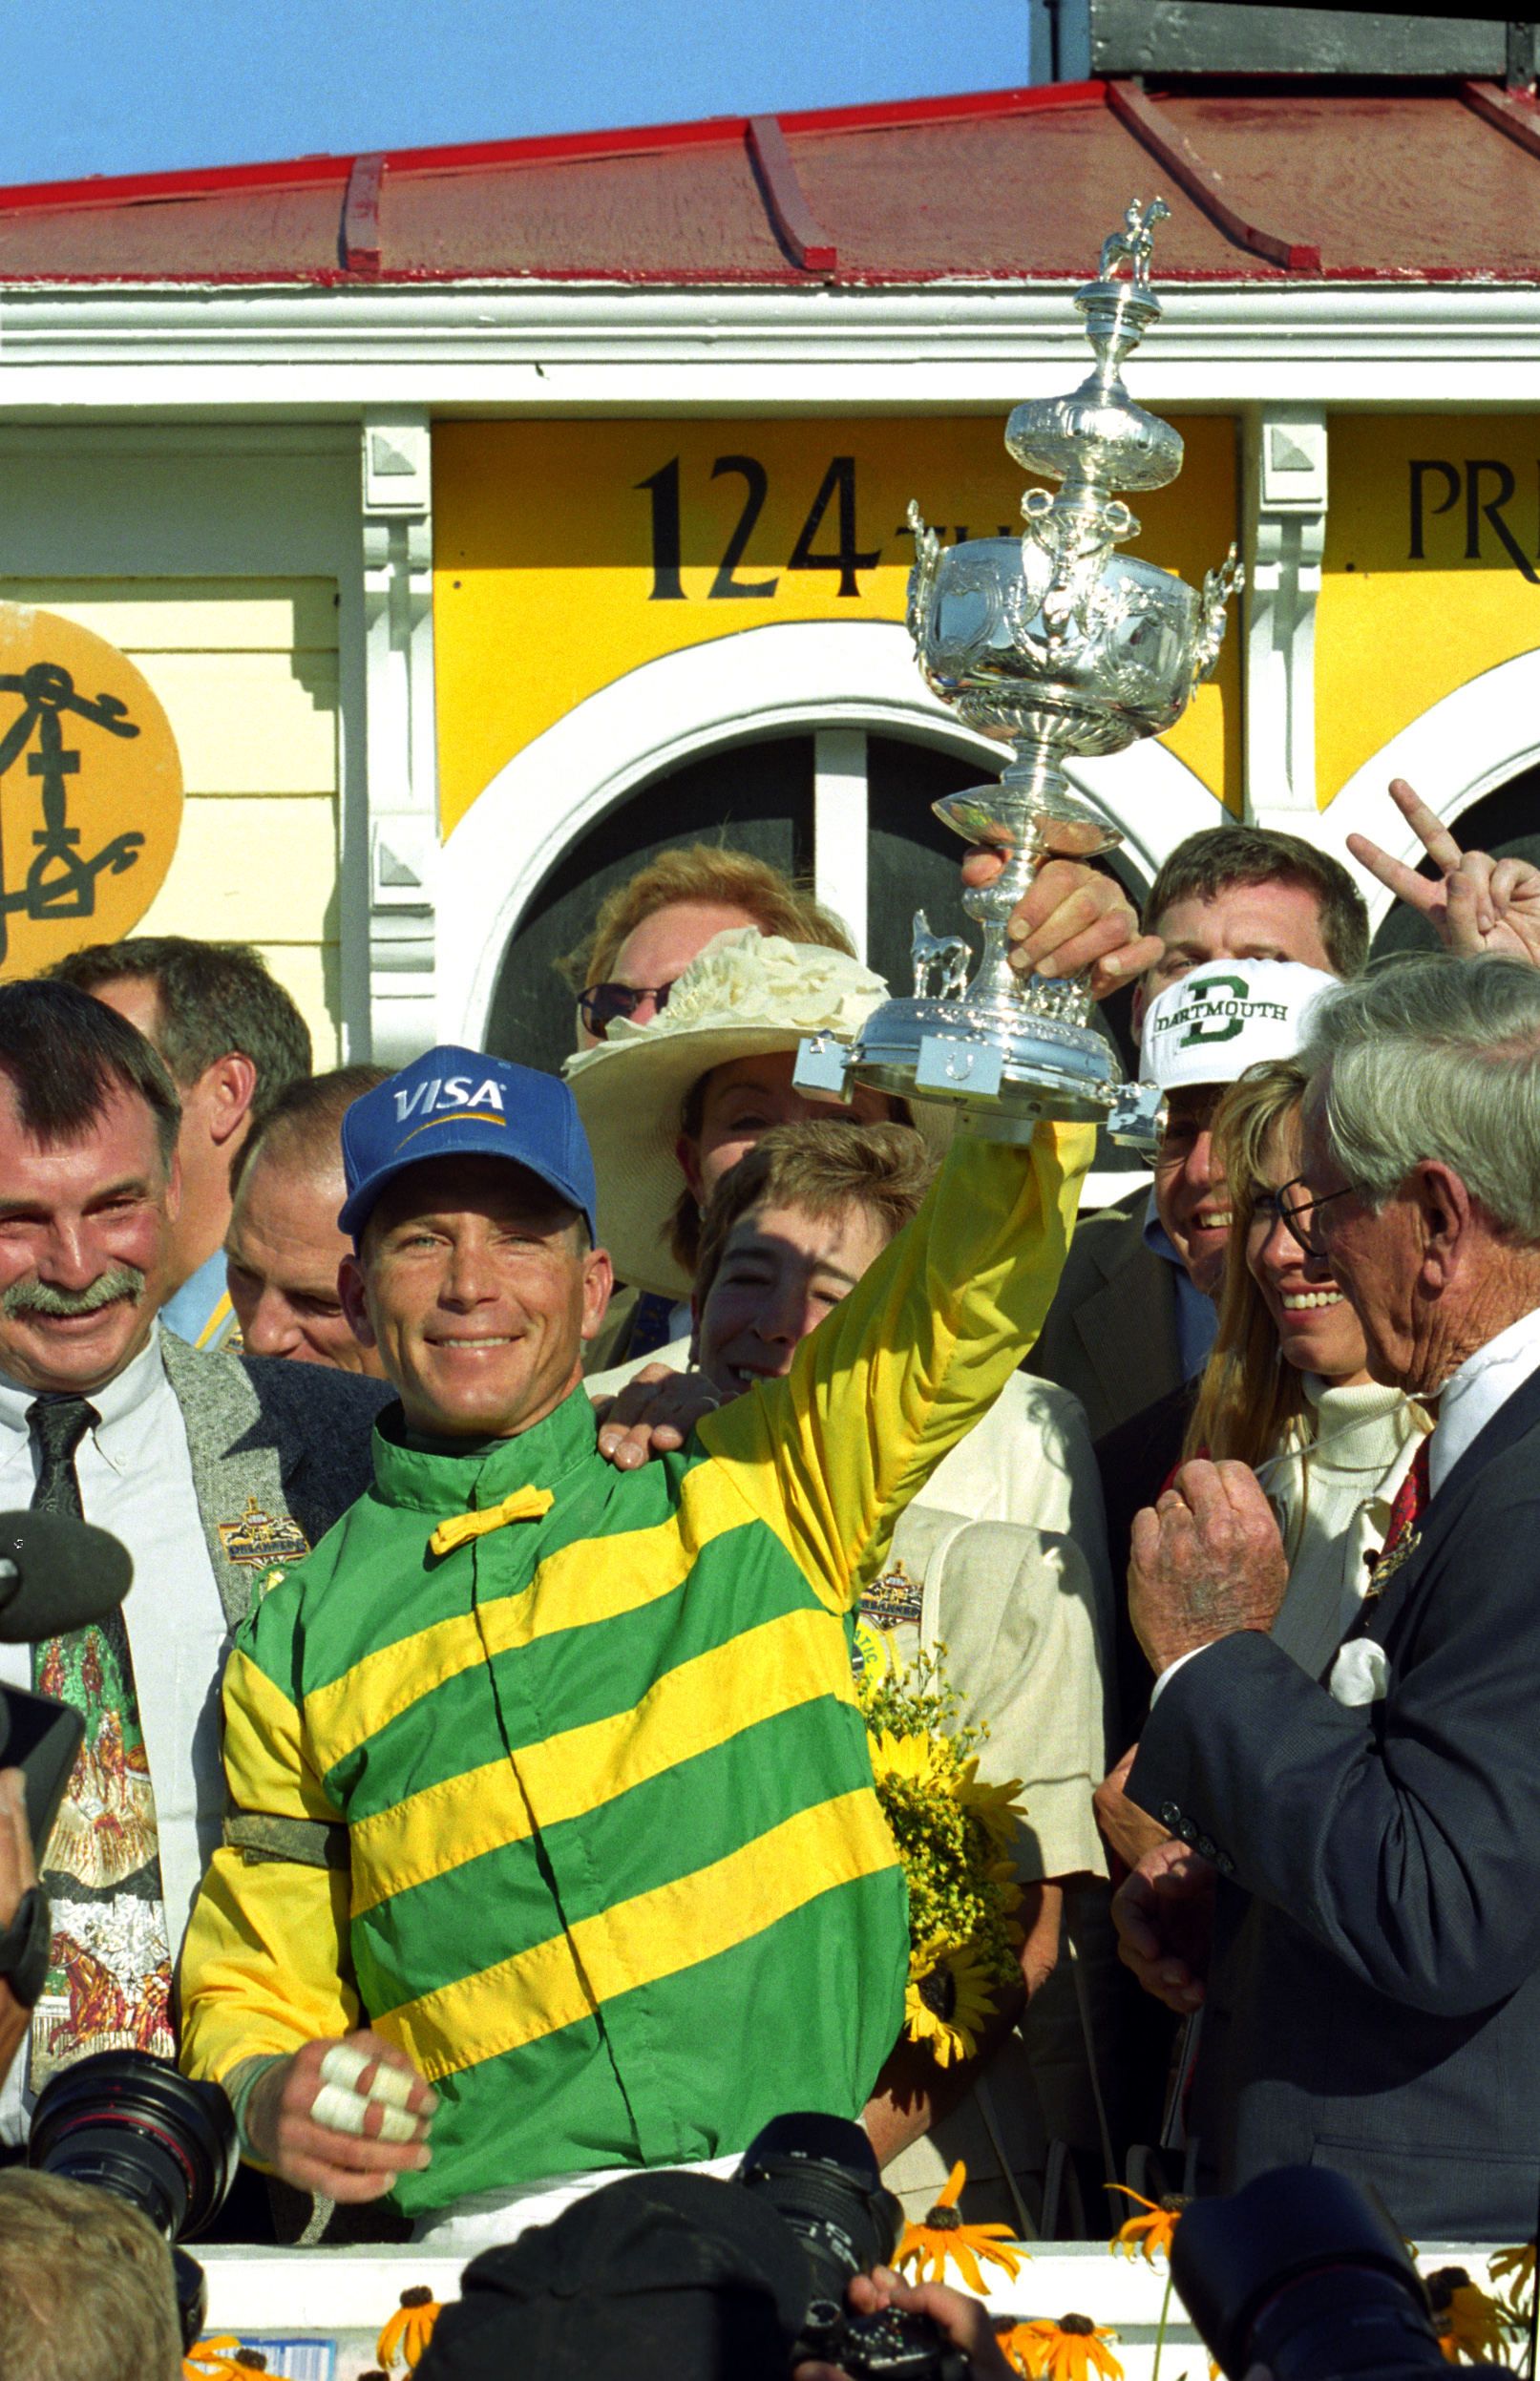 Chris Antley celebrates winning the 1999 Preakness Stakes with Charismatic (Barbara D. Livingston)